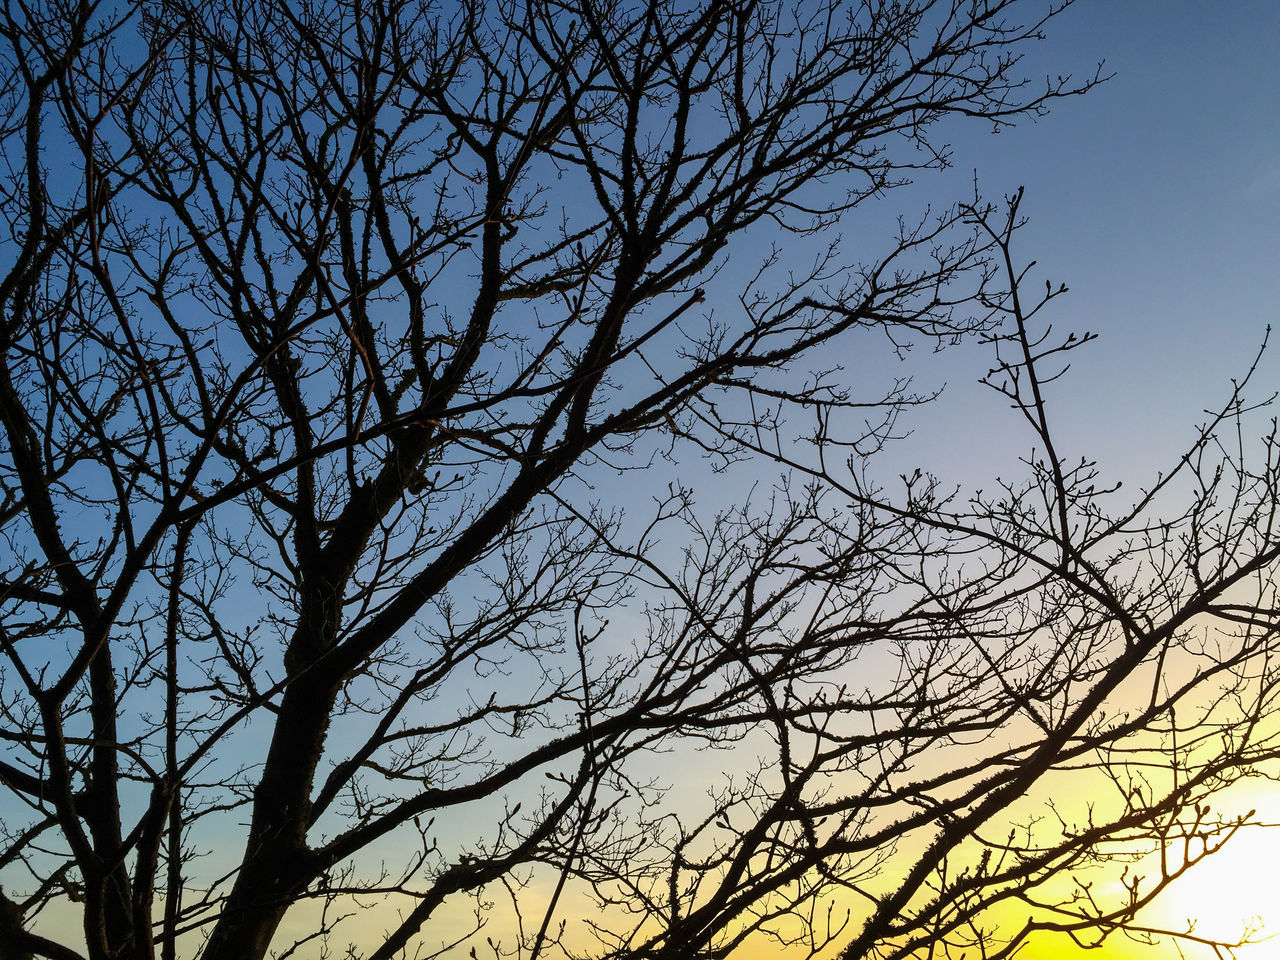 bare tree, branch, low angle view, nature, tree, beauty in nature, tranquility, outdoors, no people, sky, scenics, clear sky, day